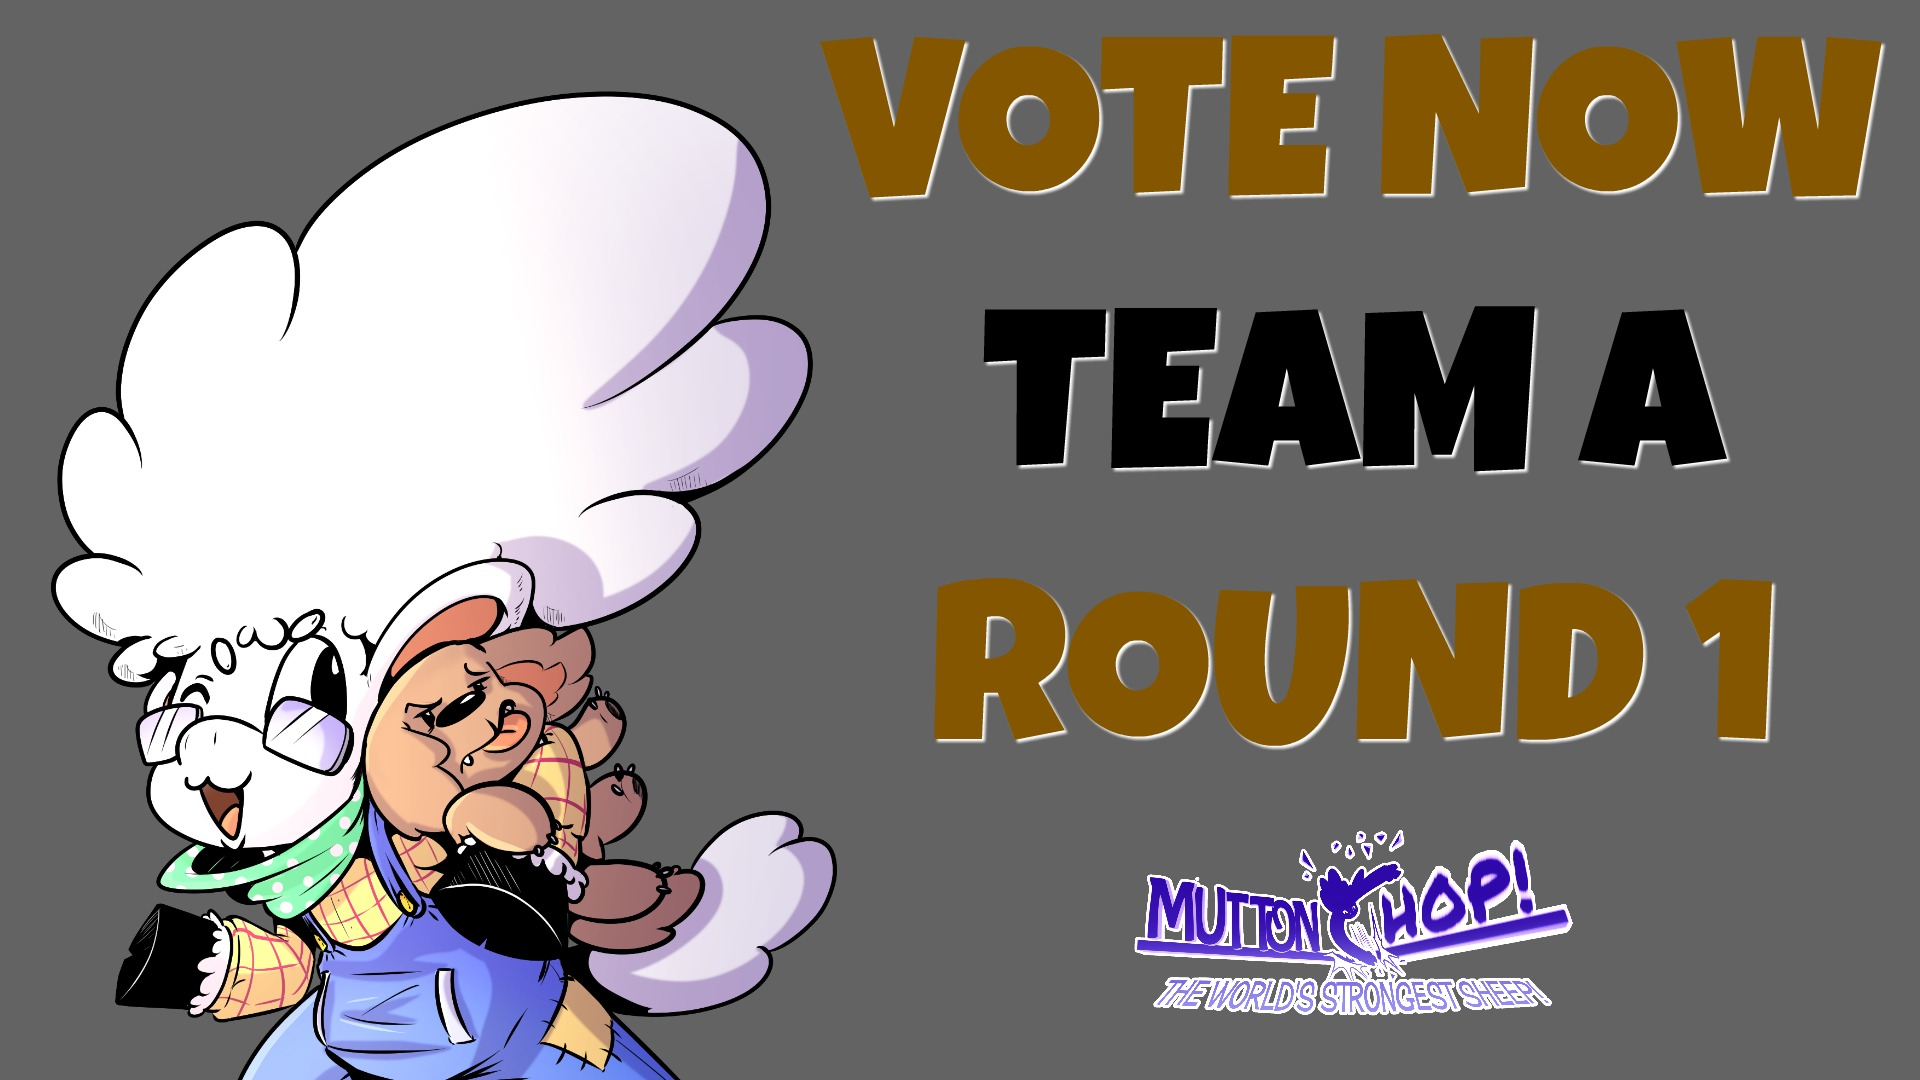 CLICK THE IMAGE TO VOTE FOR TEAM A ROUND 1 MATCHUPS -- scroll back UP for other teams.